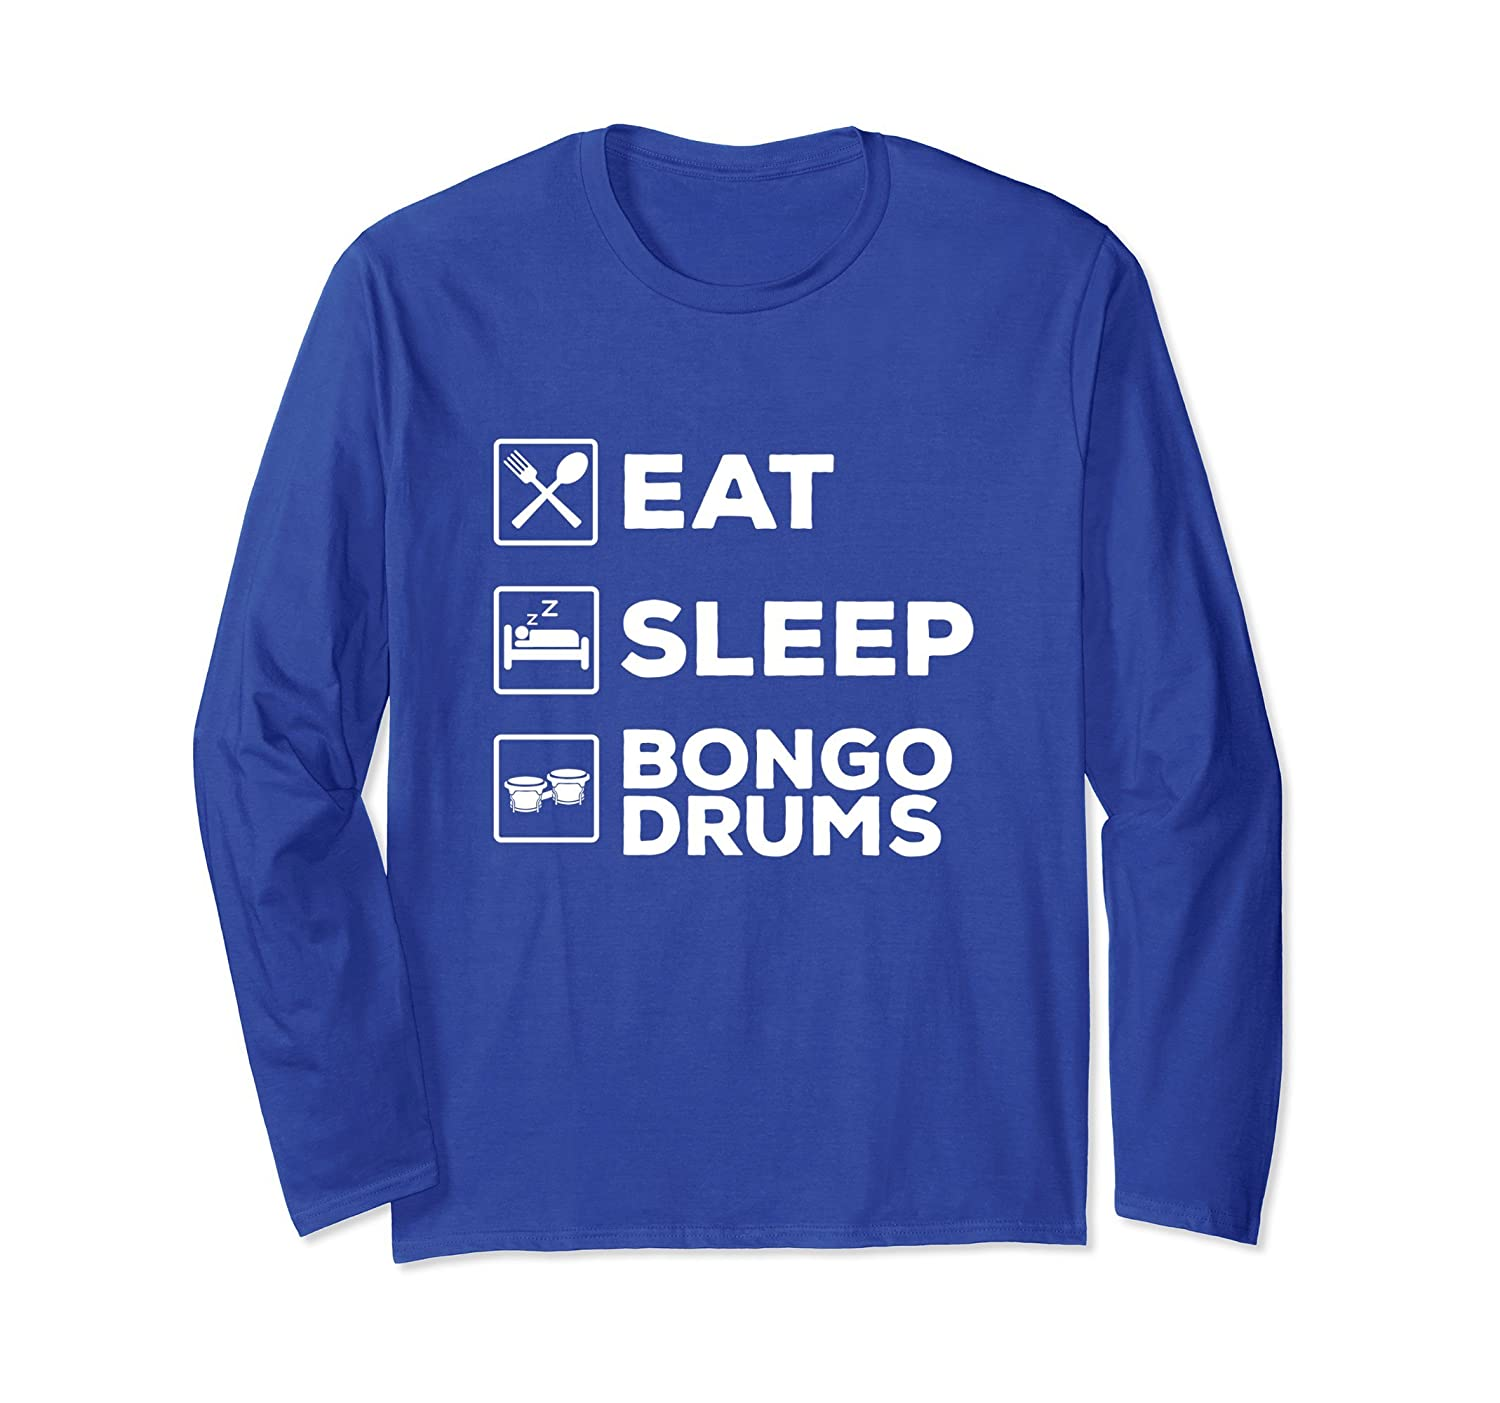 Bongo Drum Long Sleeve Shirt Gifts, Eat Sleep Bongo Drums-TH